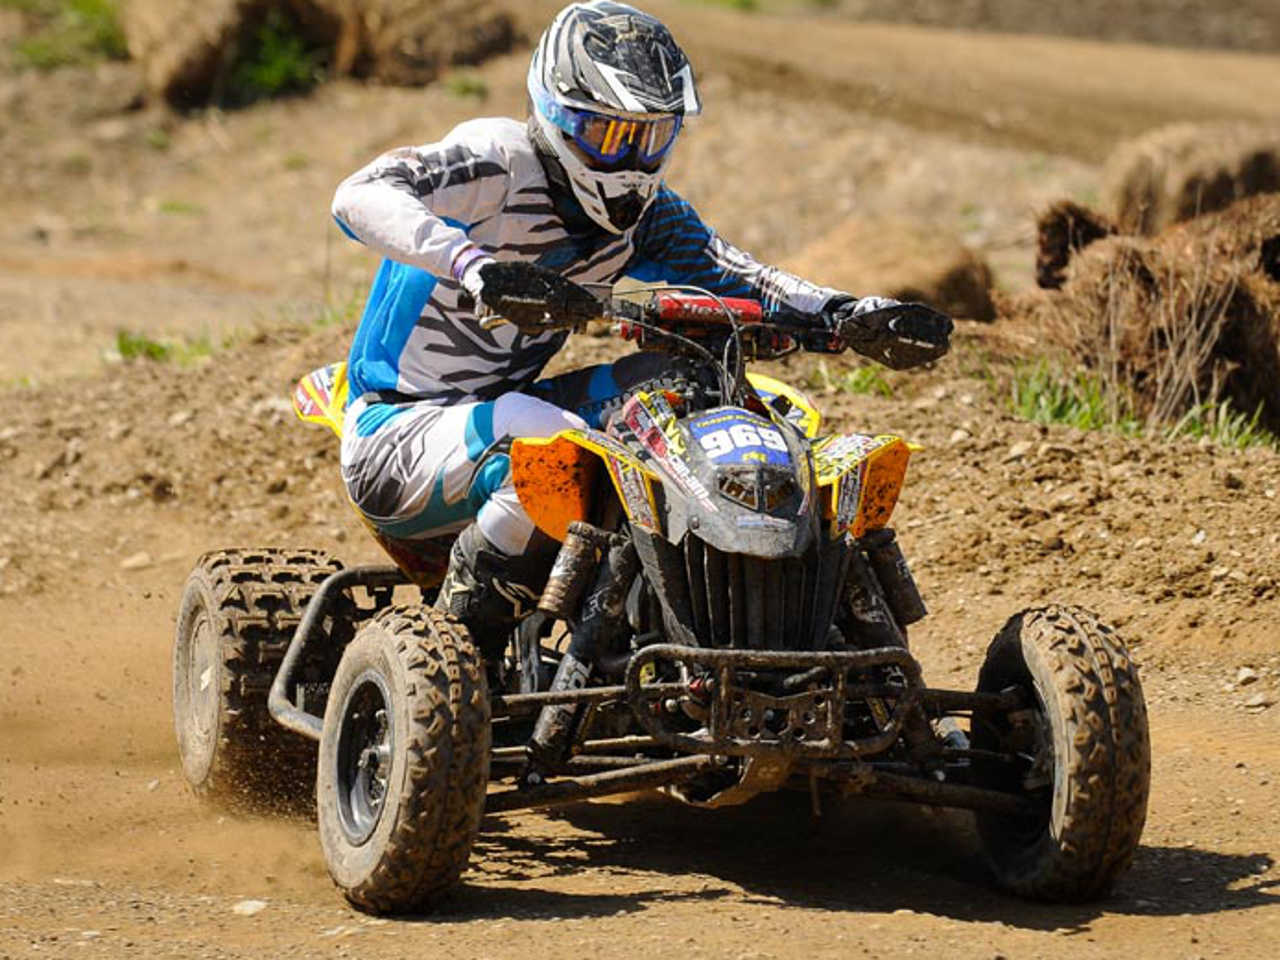 can am ds 450 pro travis moore wins neatv mx pro and pro am classes in new york atv illustrated. Black Bedroom Furniture Sets. Home Design Ideas